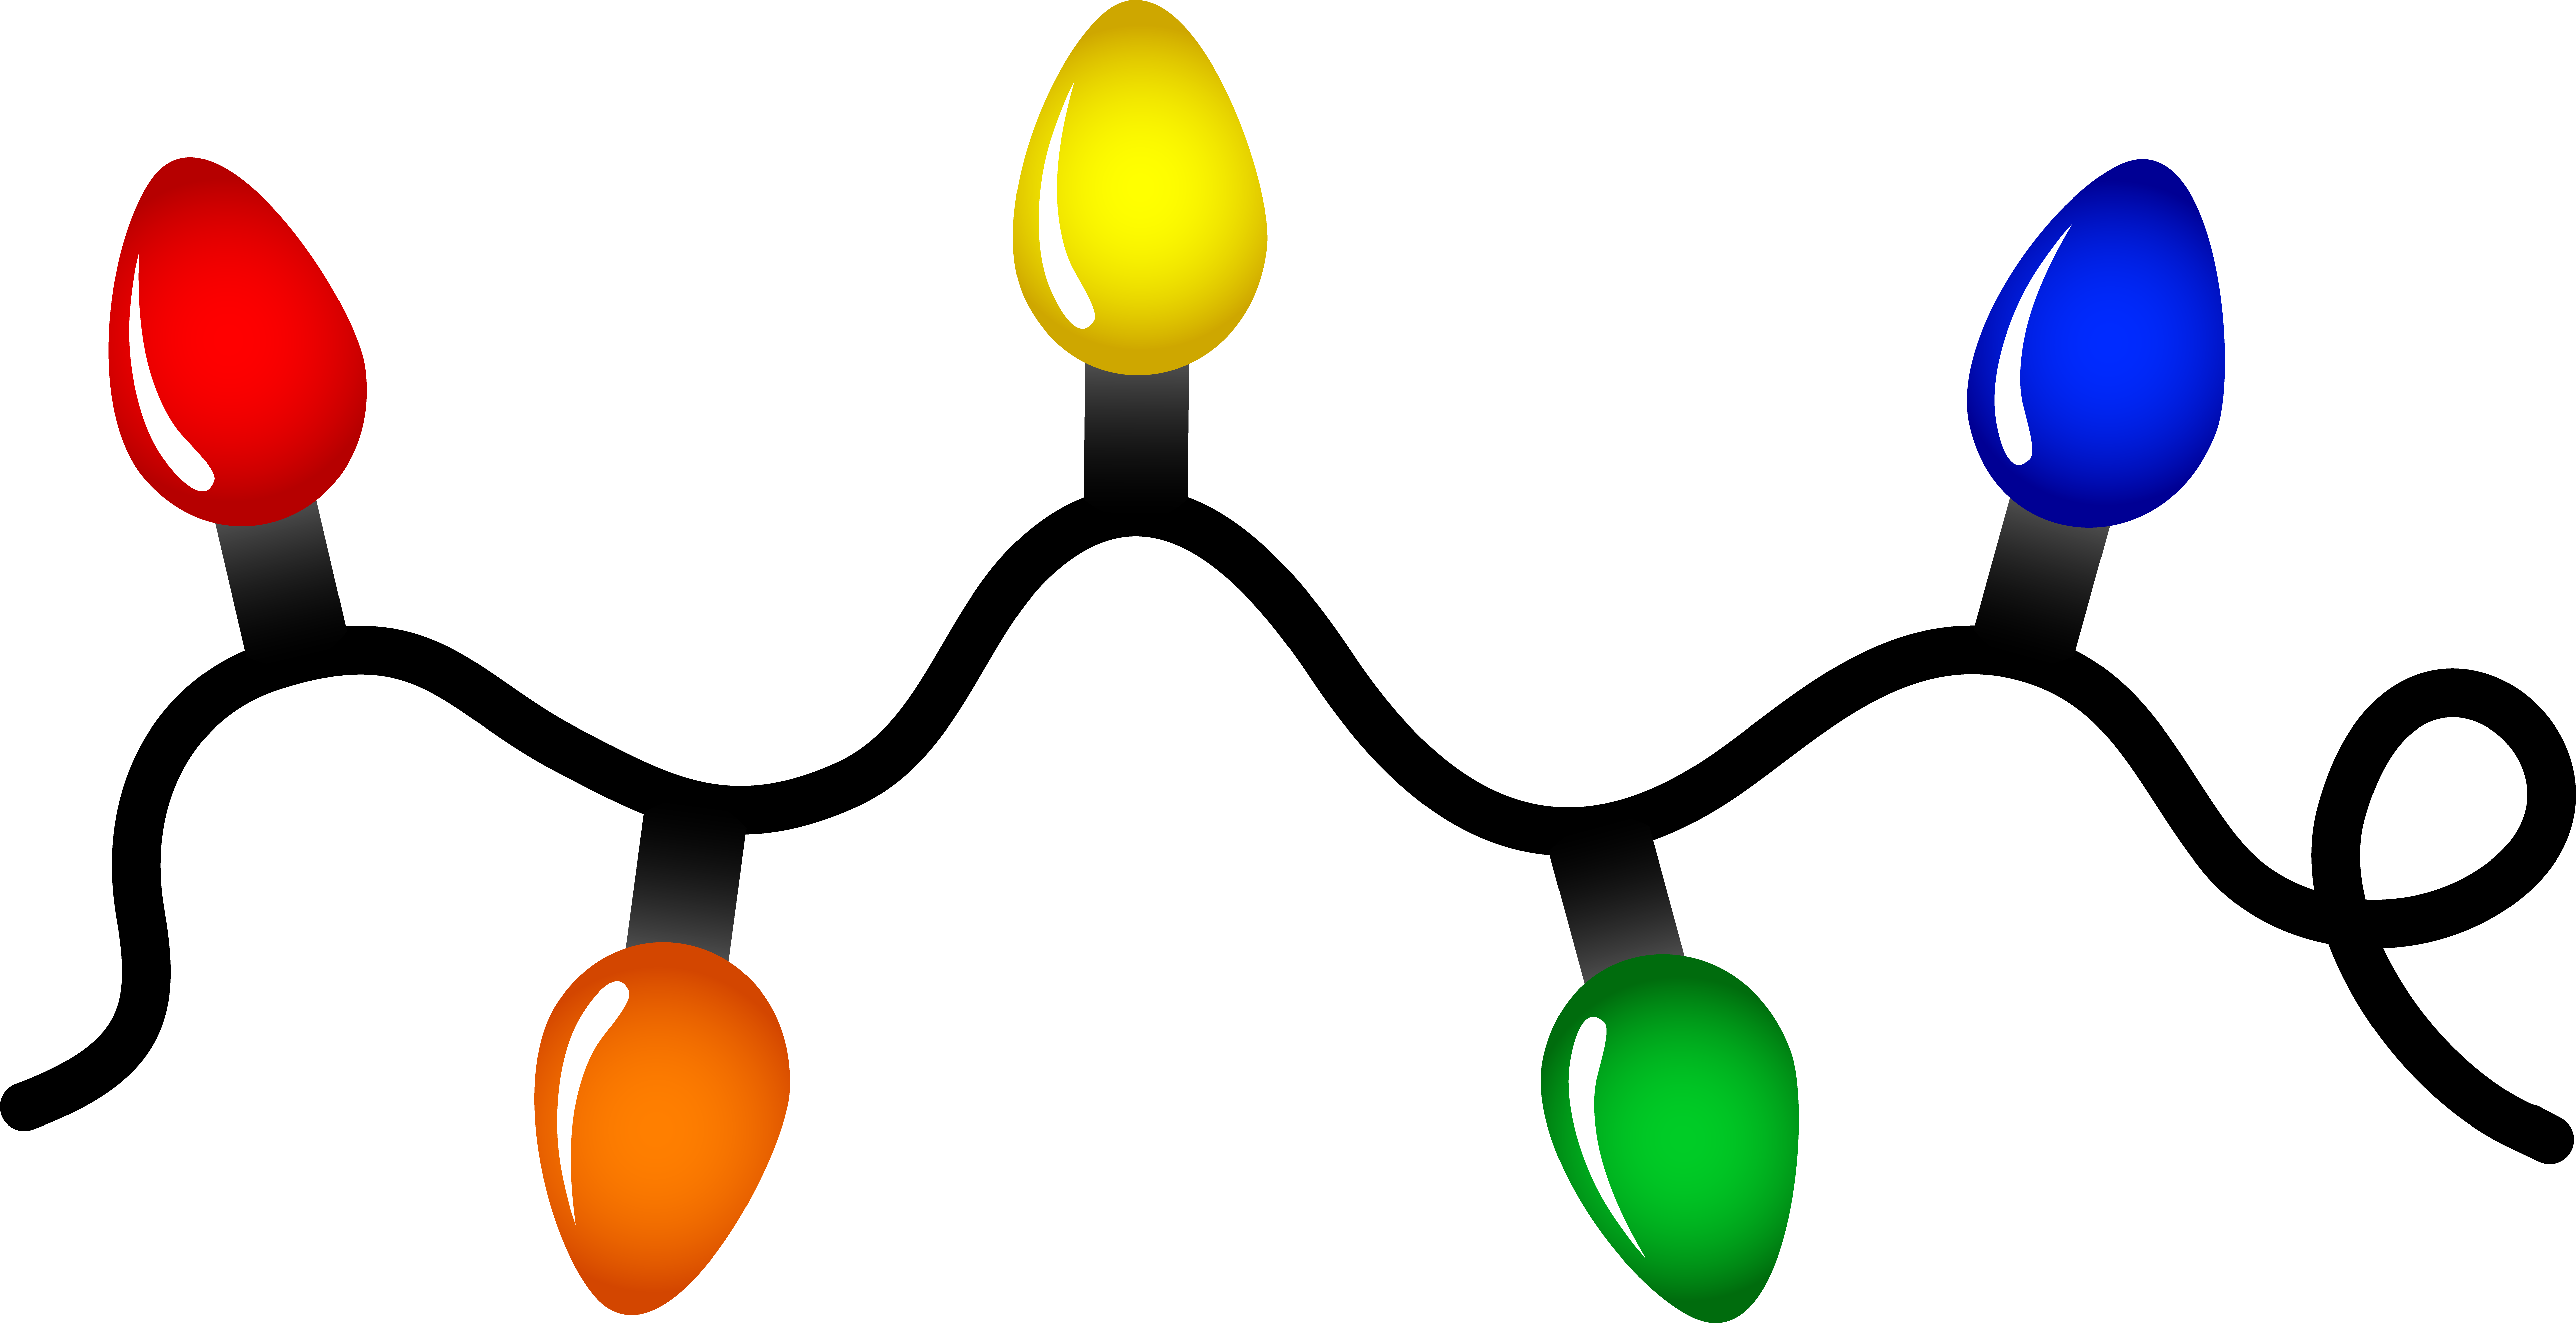 Christmas lights clipart free clipart im-Christmas lights clipart free clipart images-0